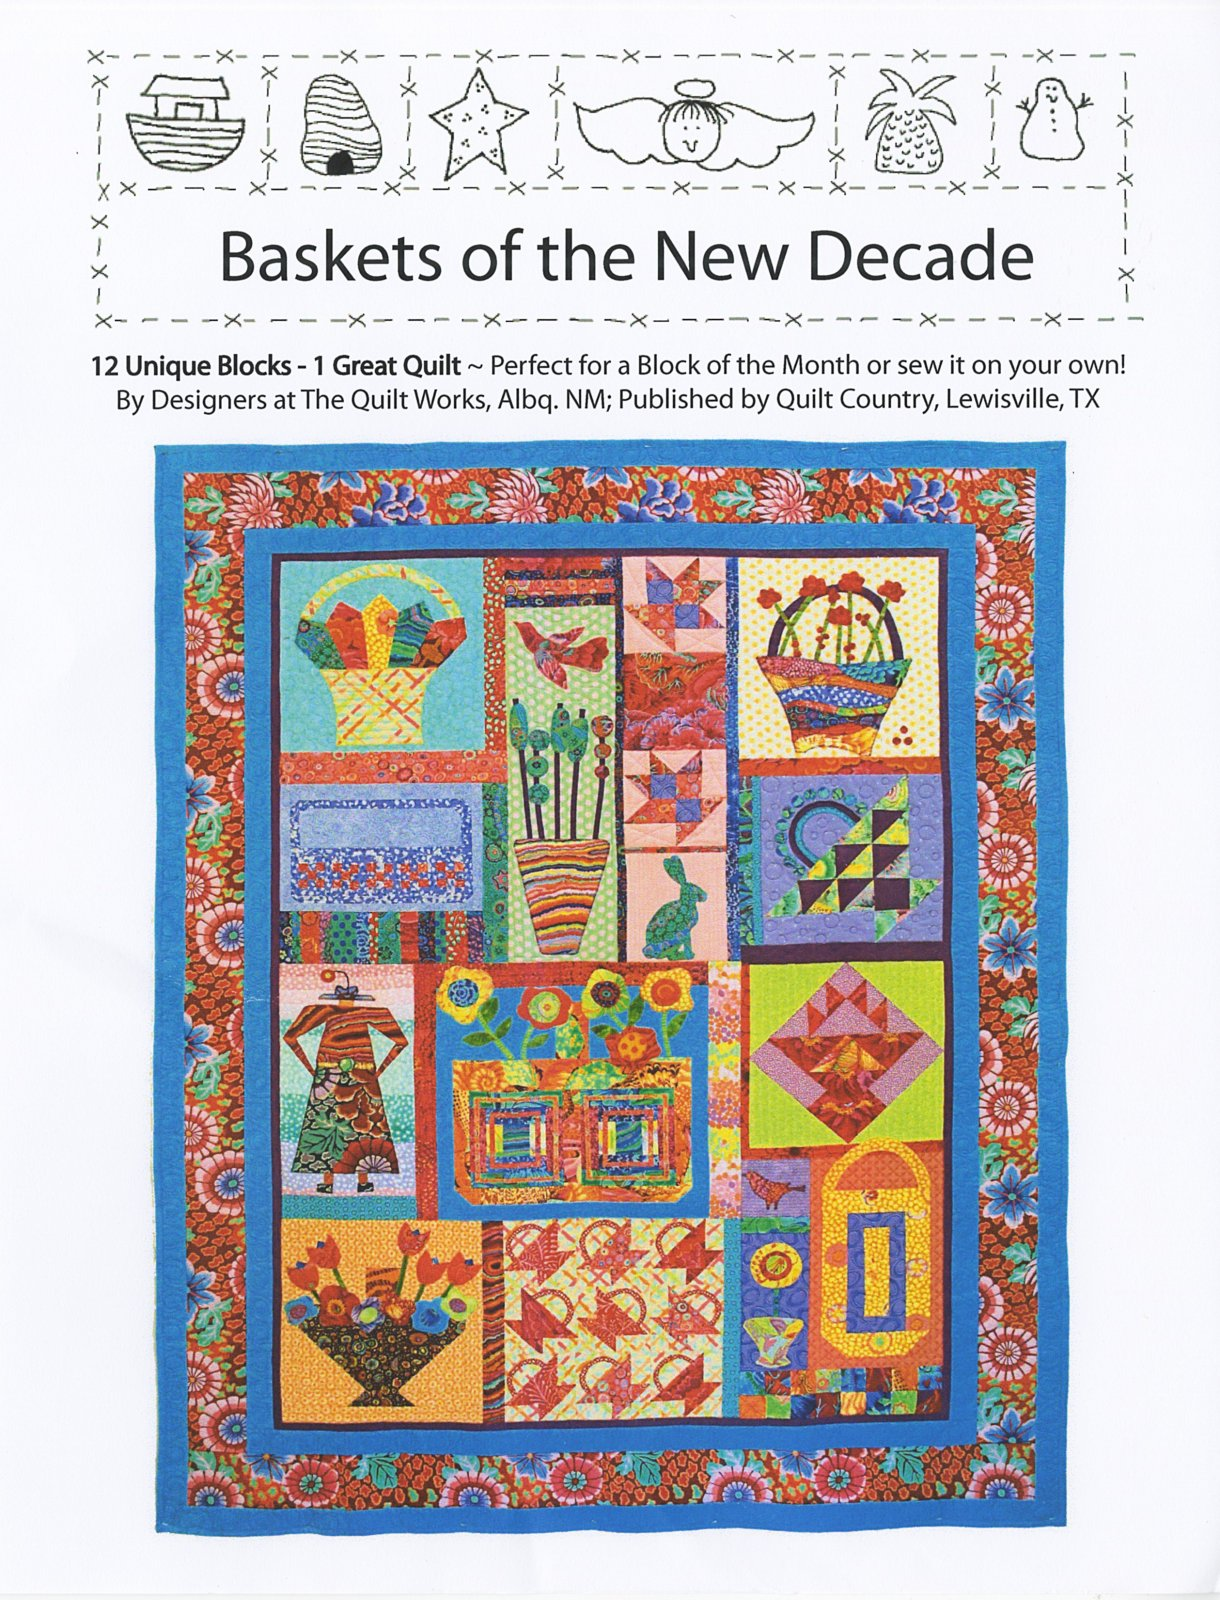 Baskets For the New Decade